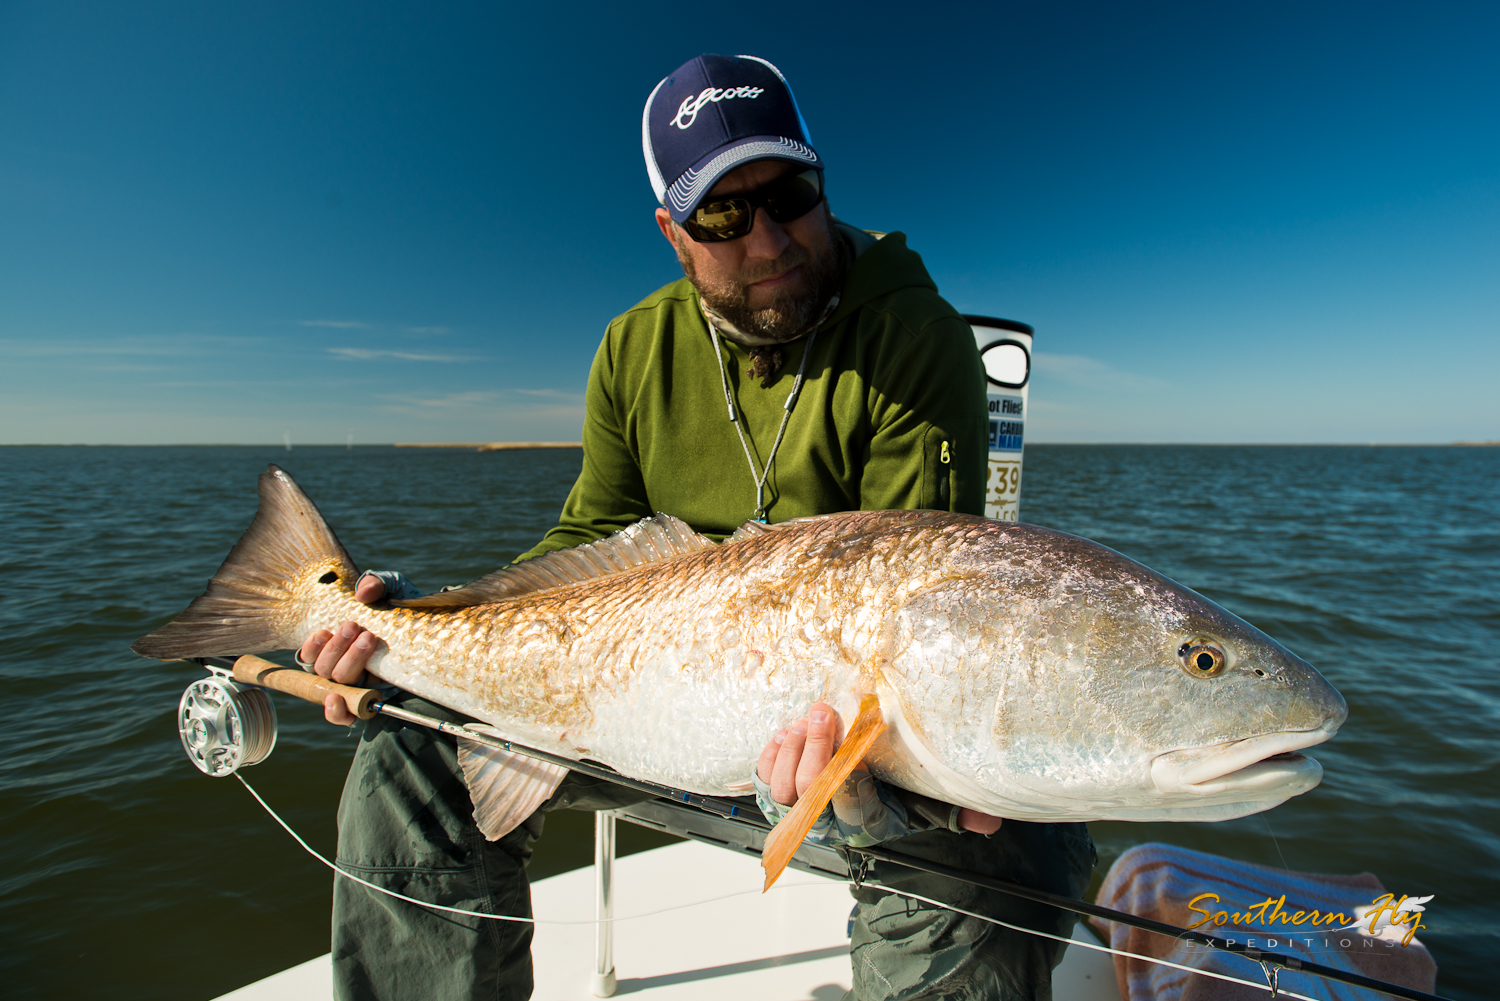 Light Tackle Redfish Guide New Orleans Southern Fly Expeditions